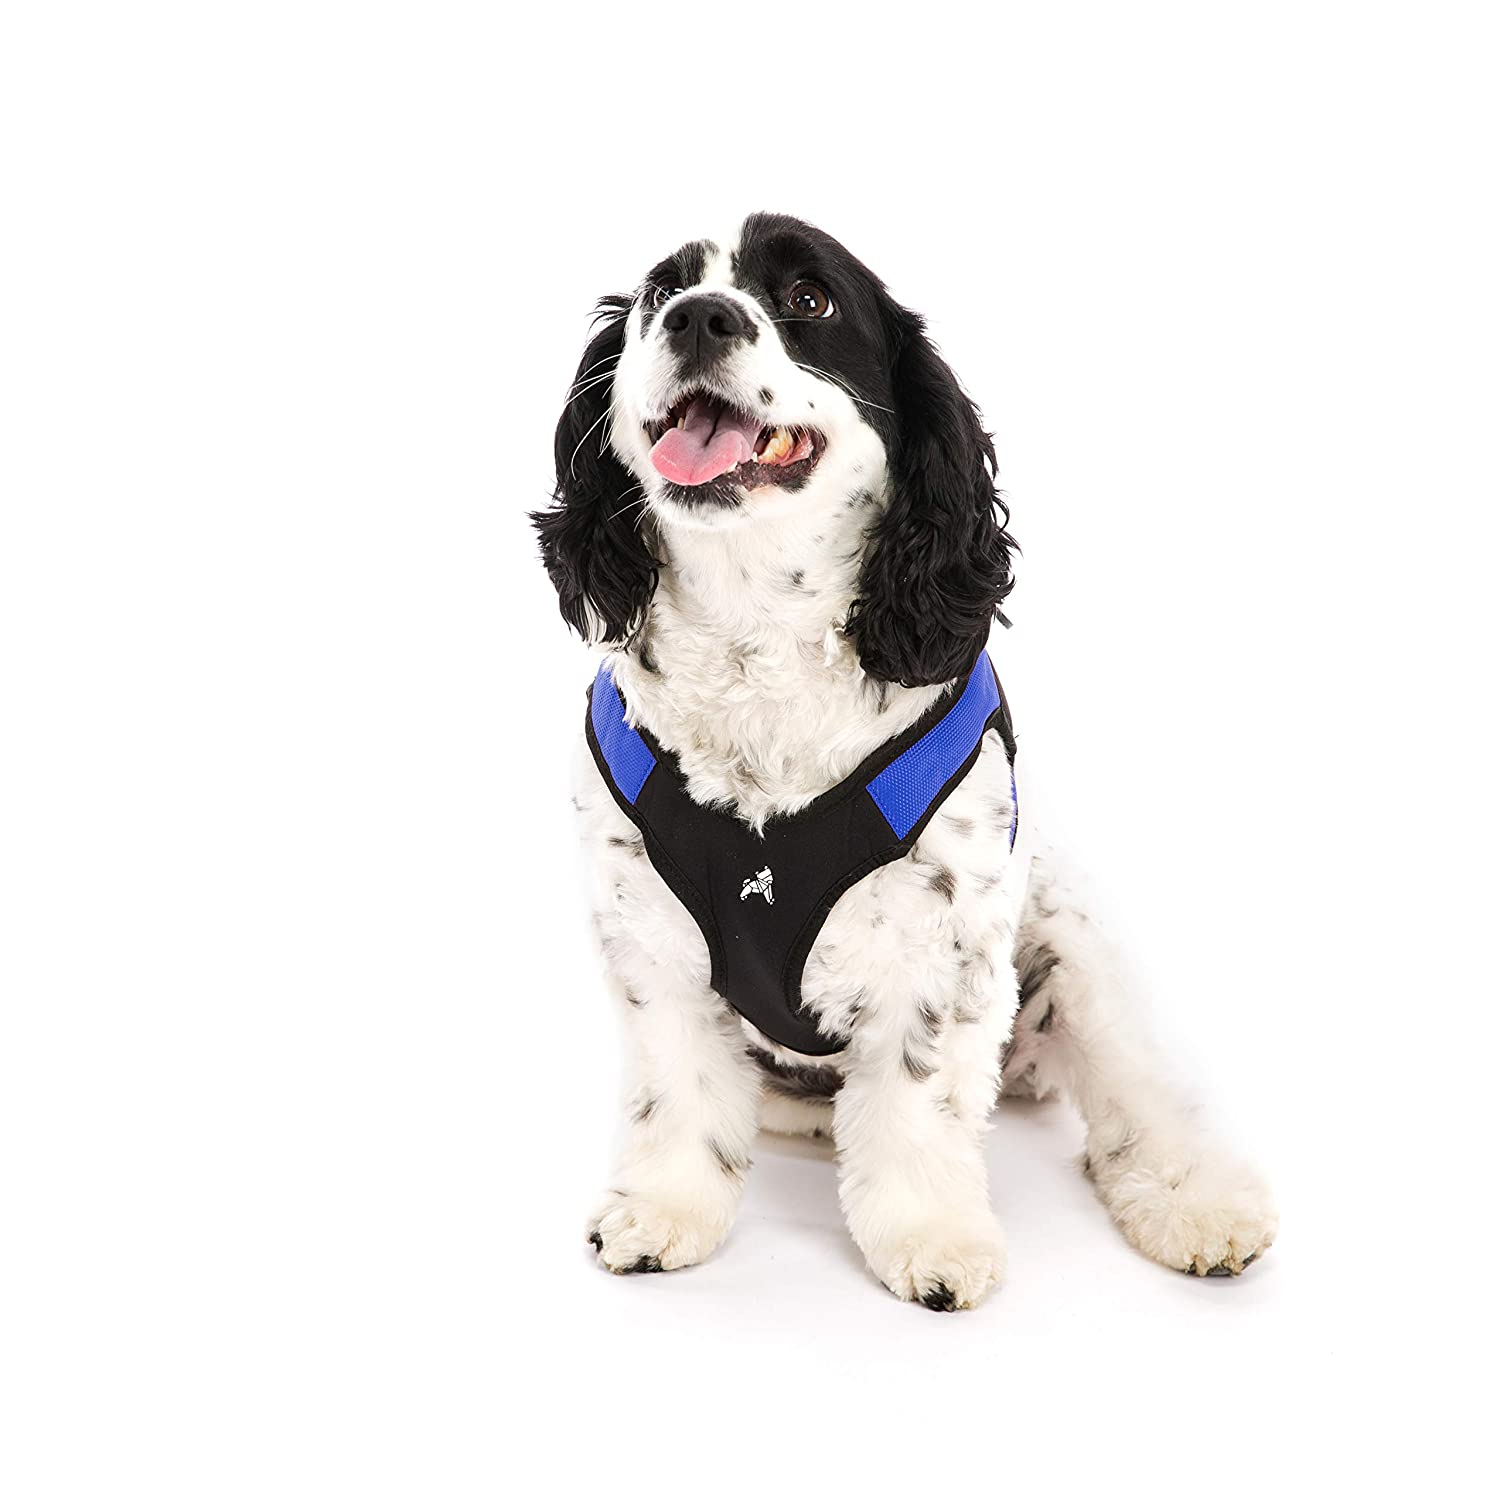 Gooby Escape Free Easy Fit Harness, Small Dog Step-in Harness for Dogs That Like to Escape Their Harness, bluee, Large